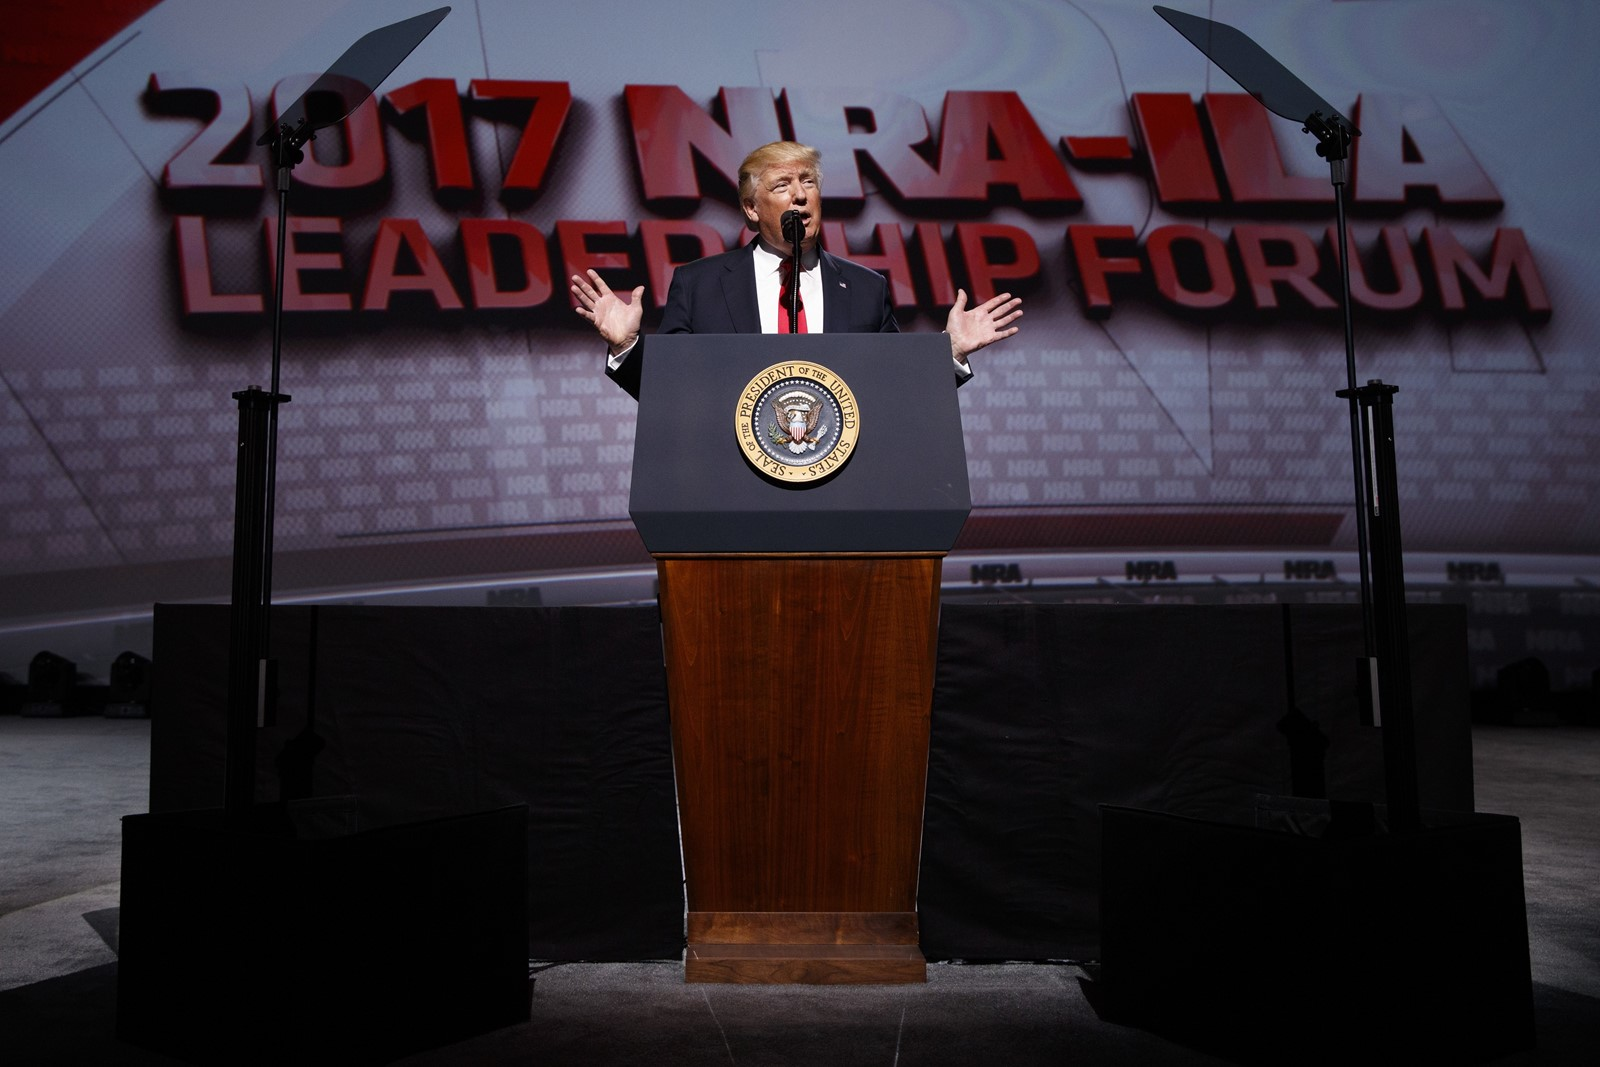 President Donald J. Trump addresses the National Rifle Association's leadership conference in Atlanta last year. — Photograph: Evan Vucci/Associated Press.